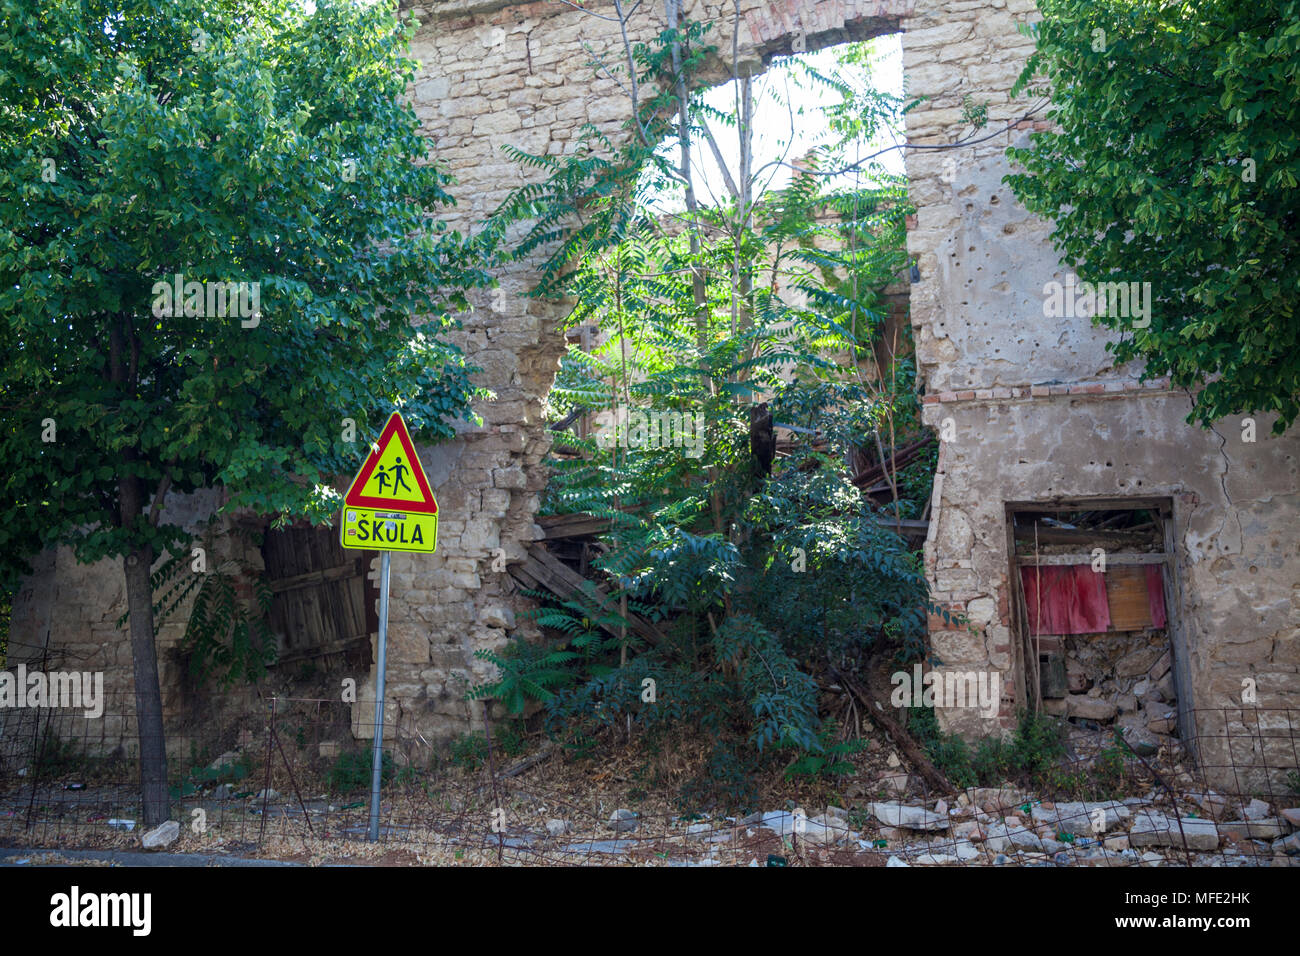 Trees growing within the remains of an old school from the Bosnian War in Mostar, Bosnia and Herzegovina - Stock Image